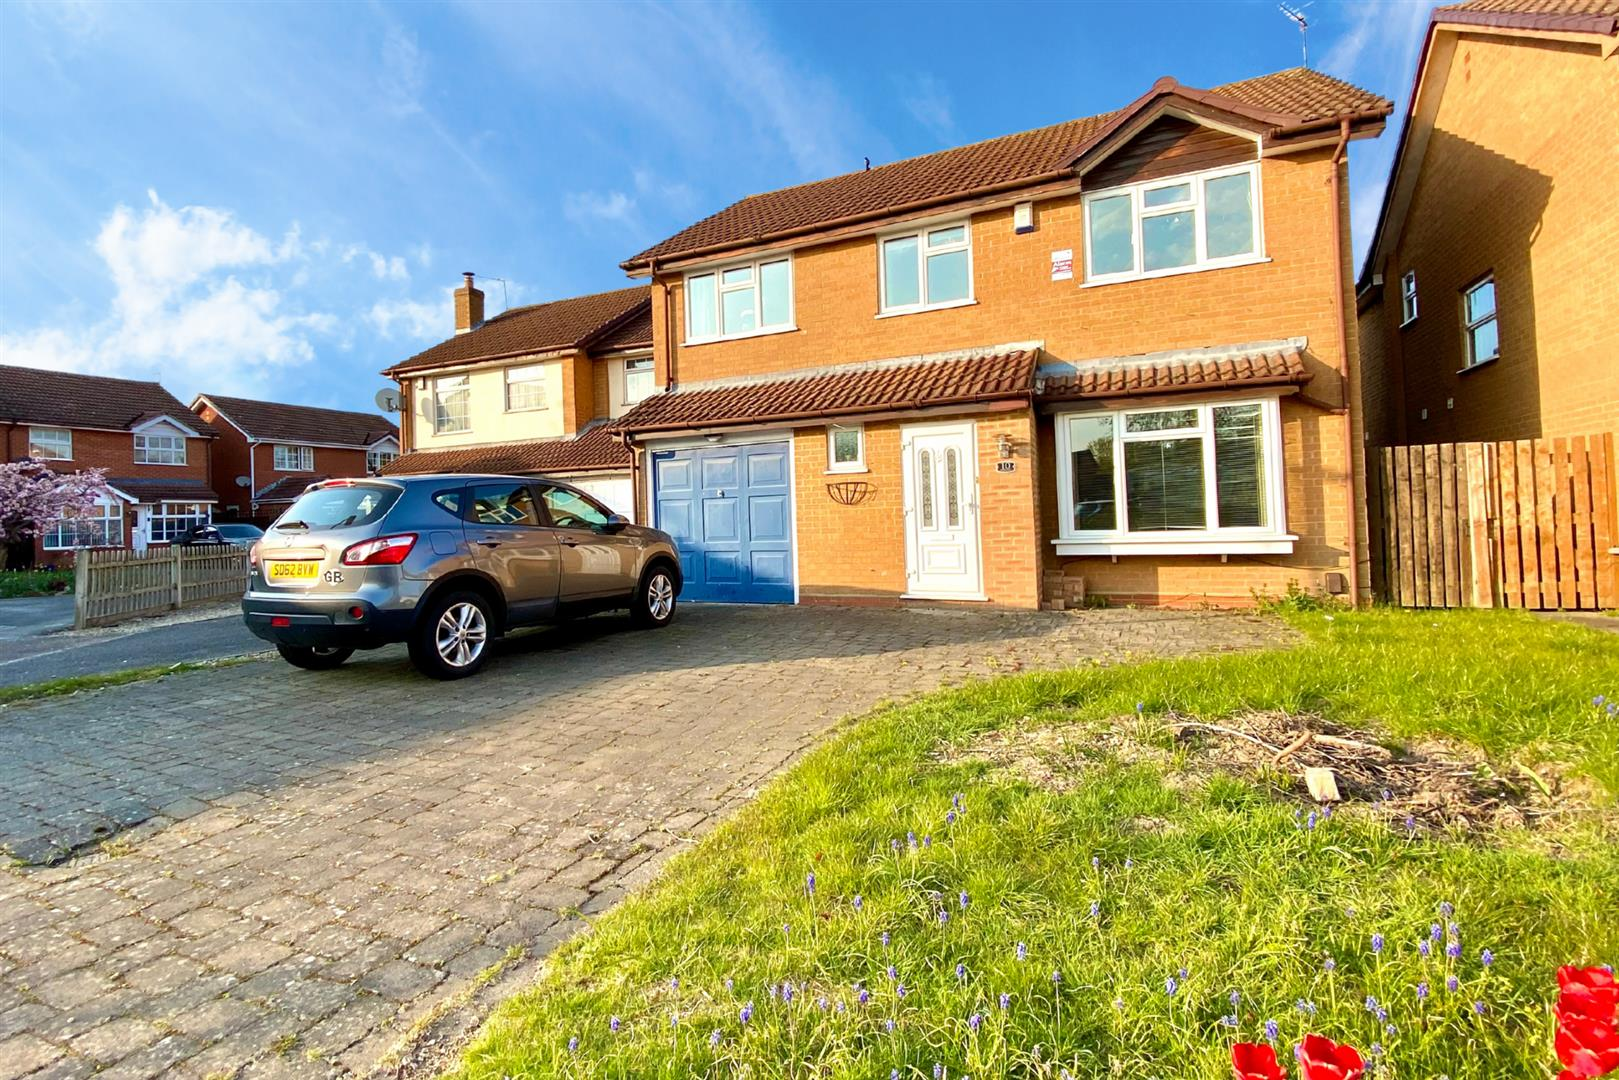 4 bed detached for sale in Lower Earley, RG6